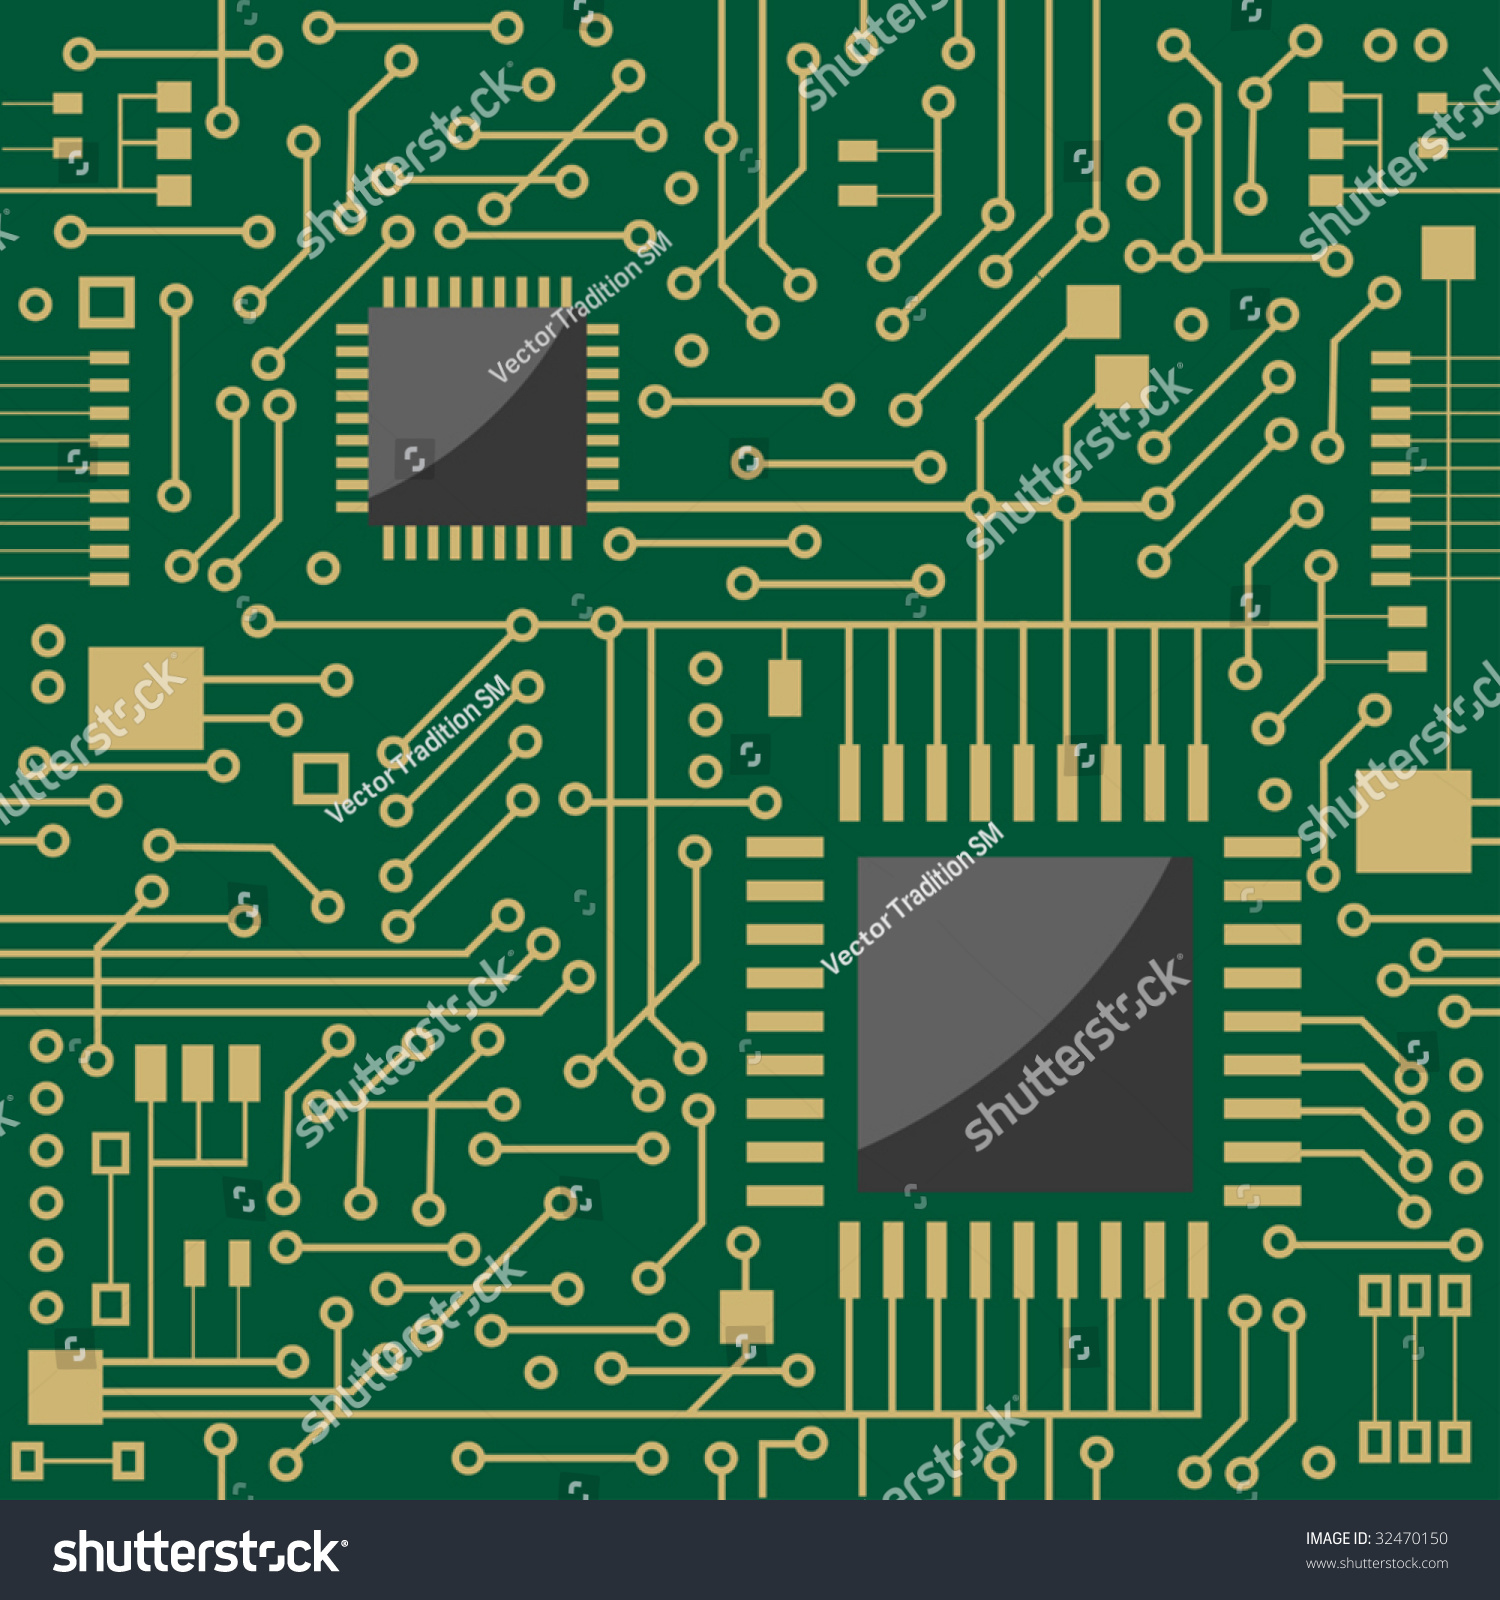 Seamless Background Showing A Schematic Diagram For An